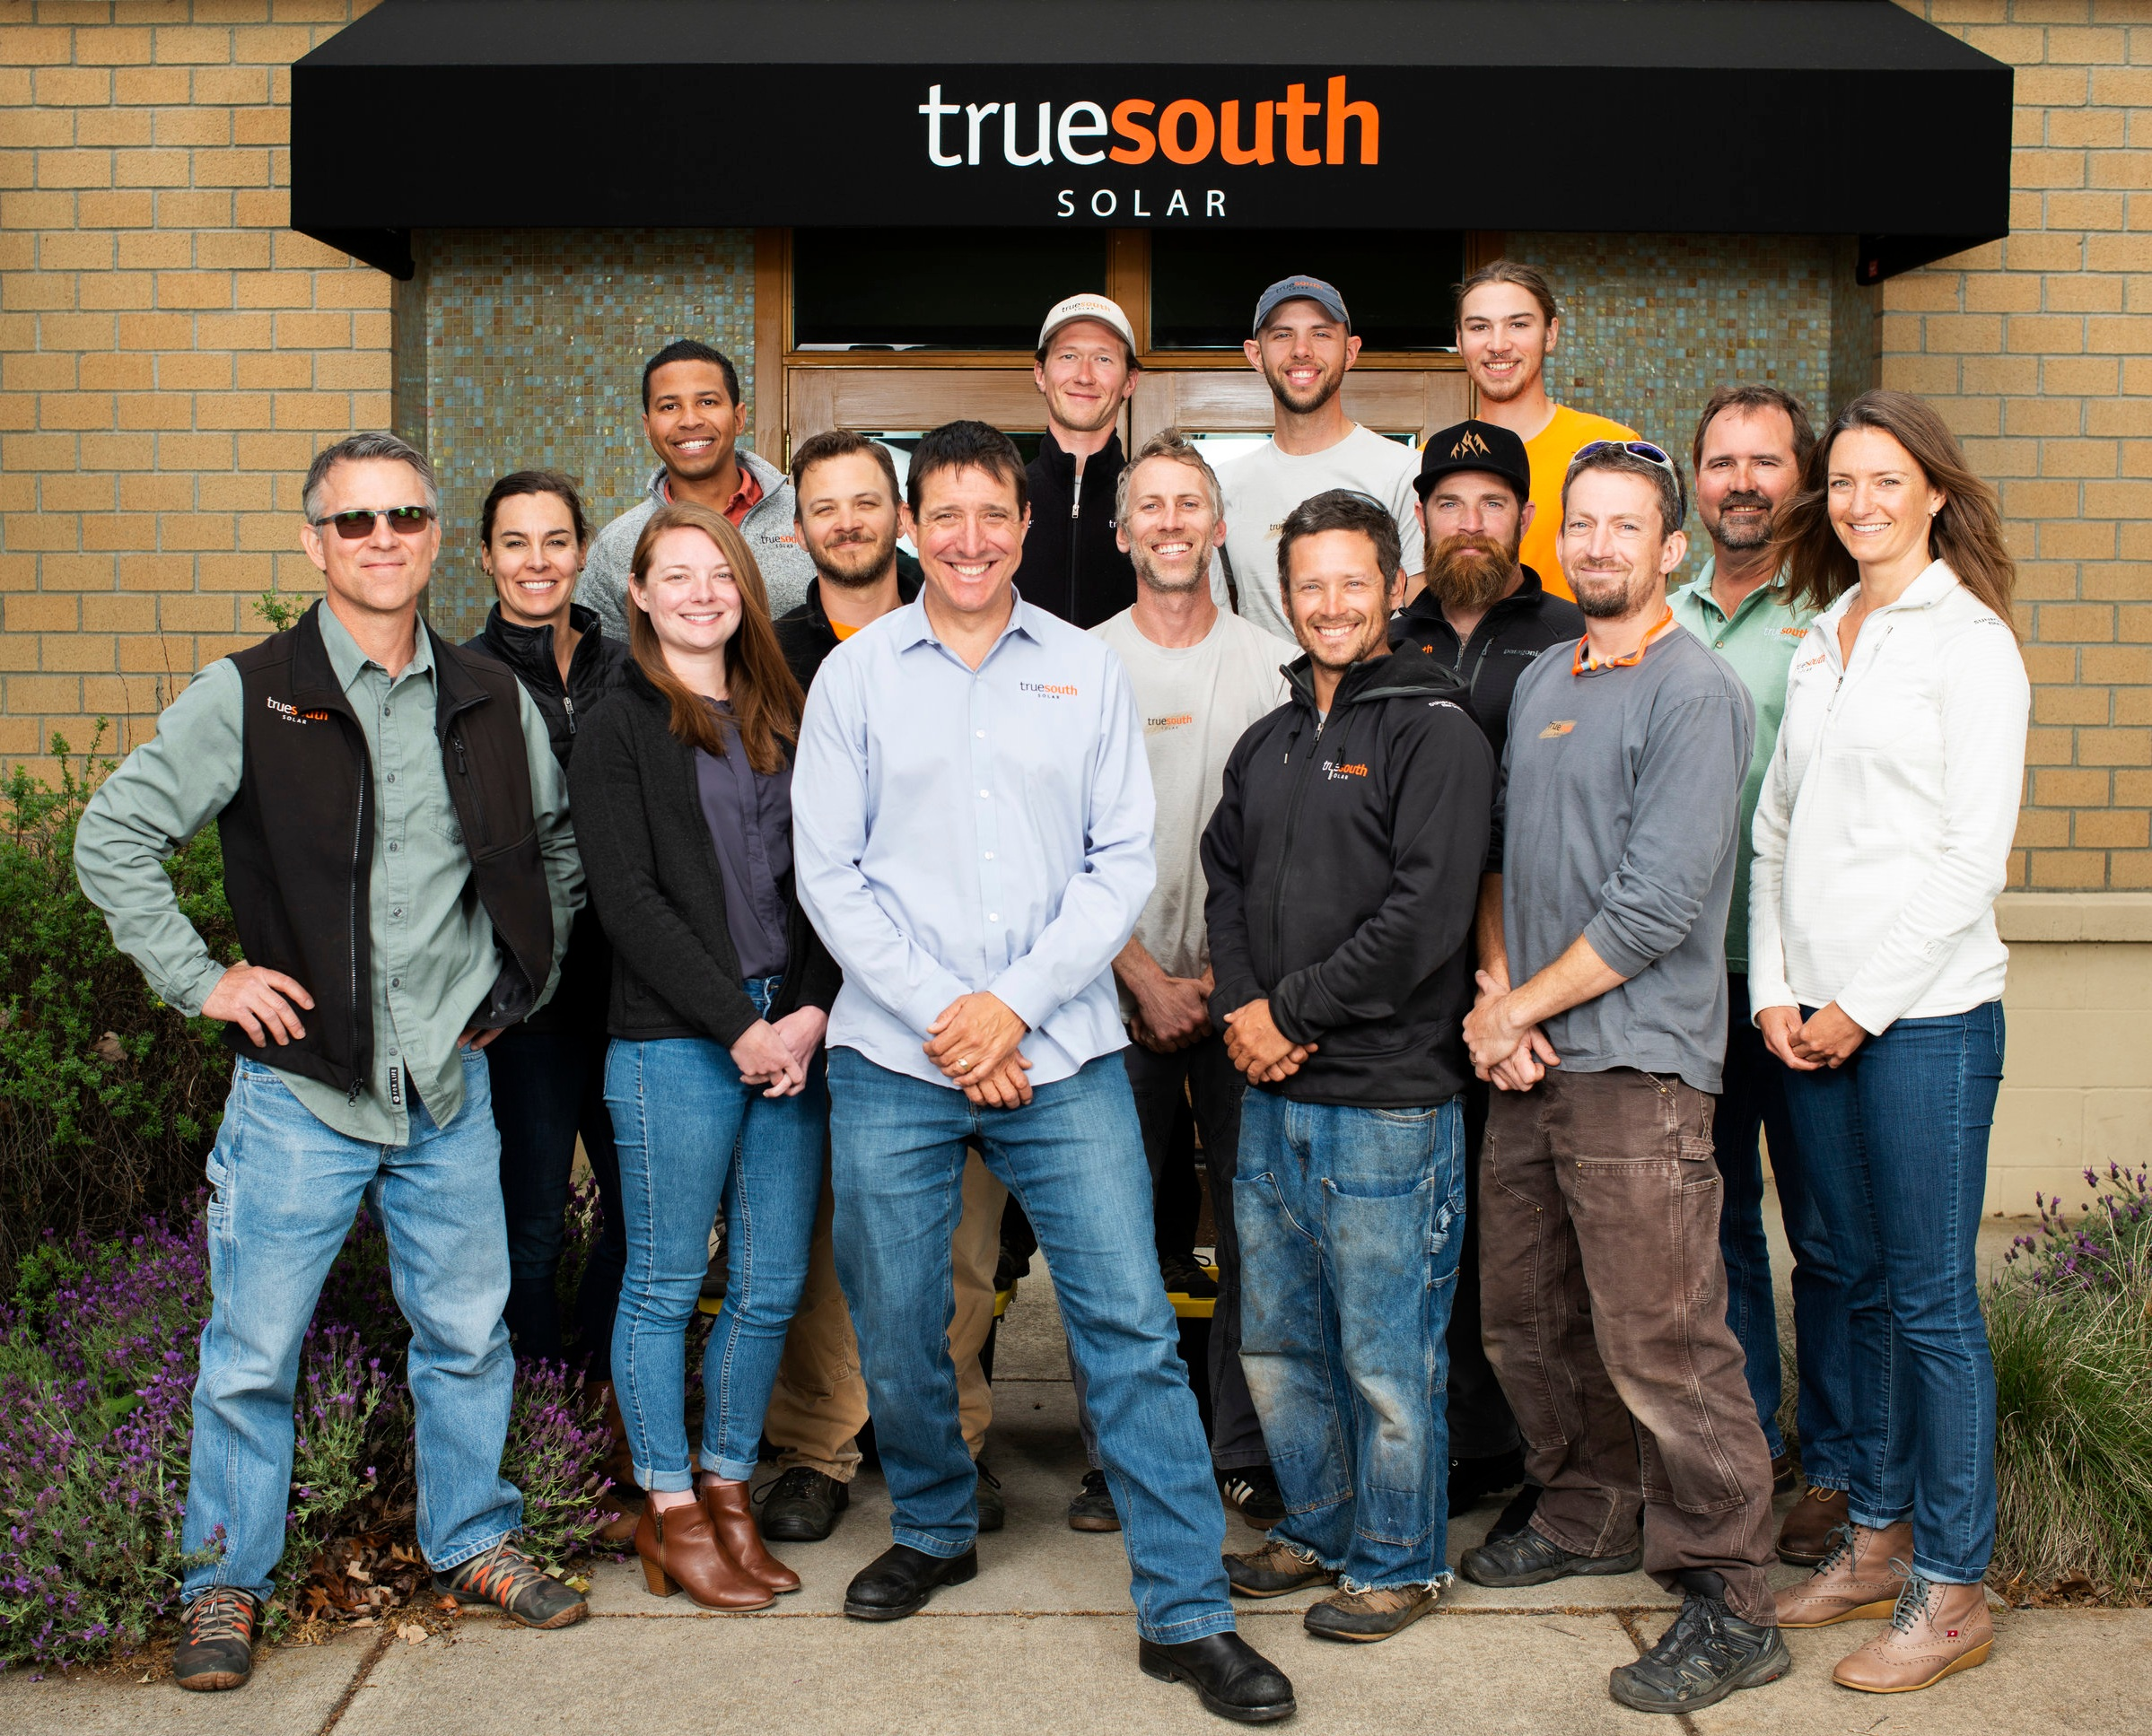 True+South+Solar+Team+2019.jpg